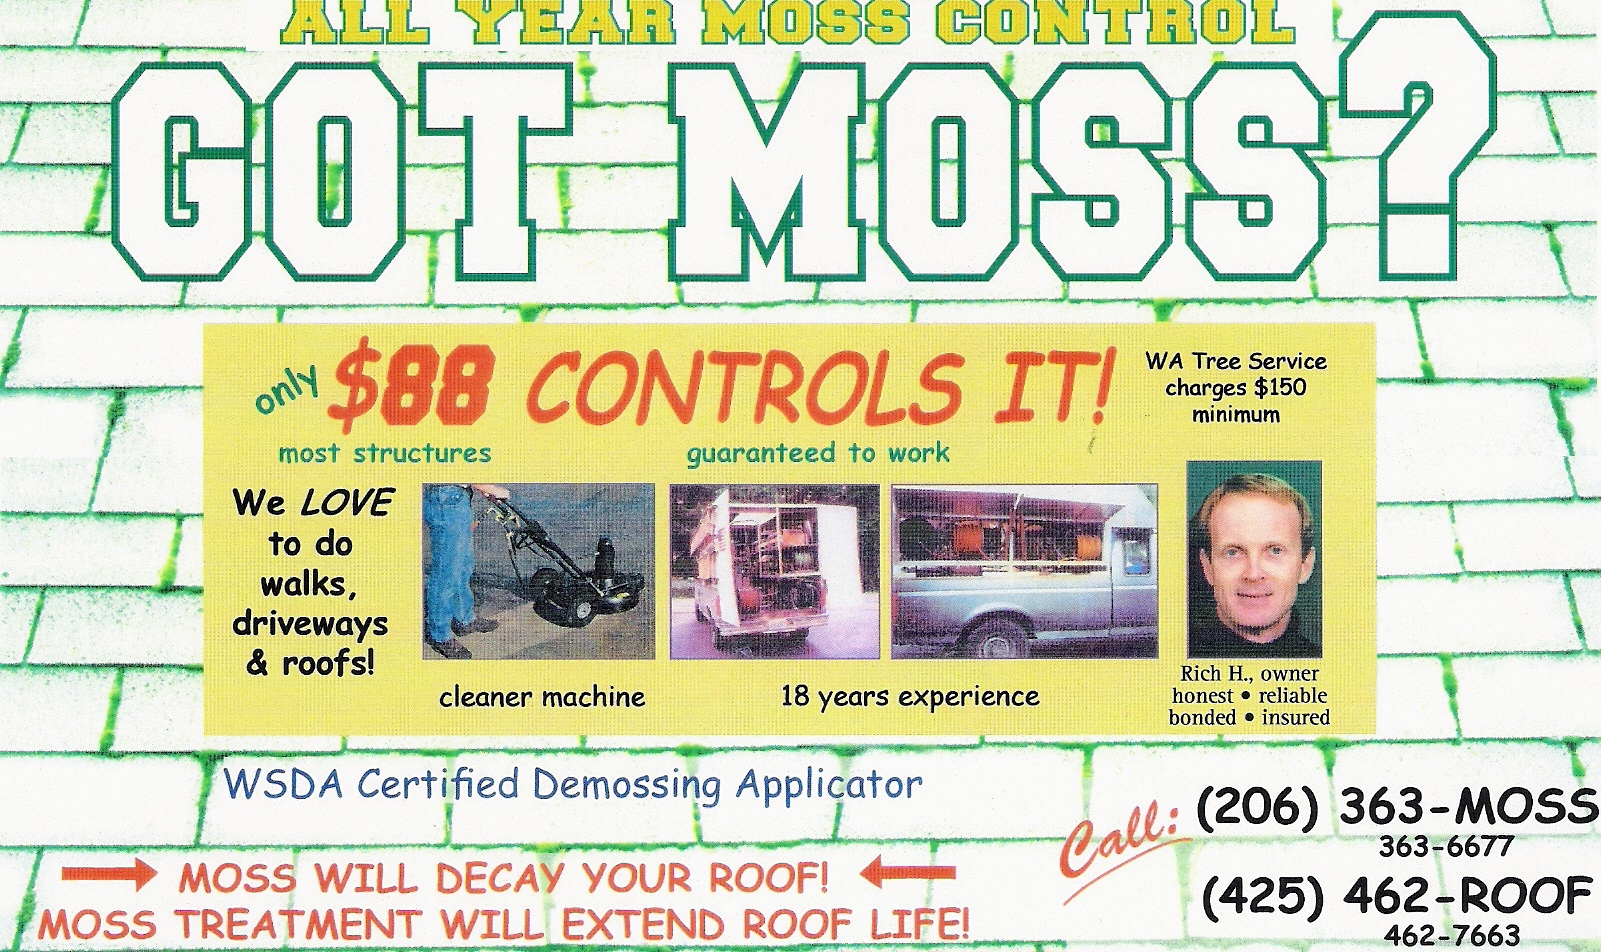 All Year Moss Control Call  206-363-MOSS(6677) or 425-462-ROOF(7663)